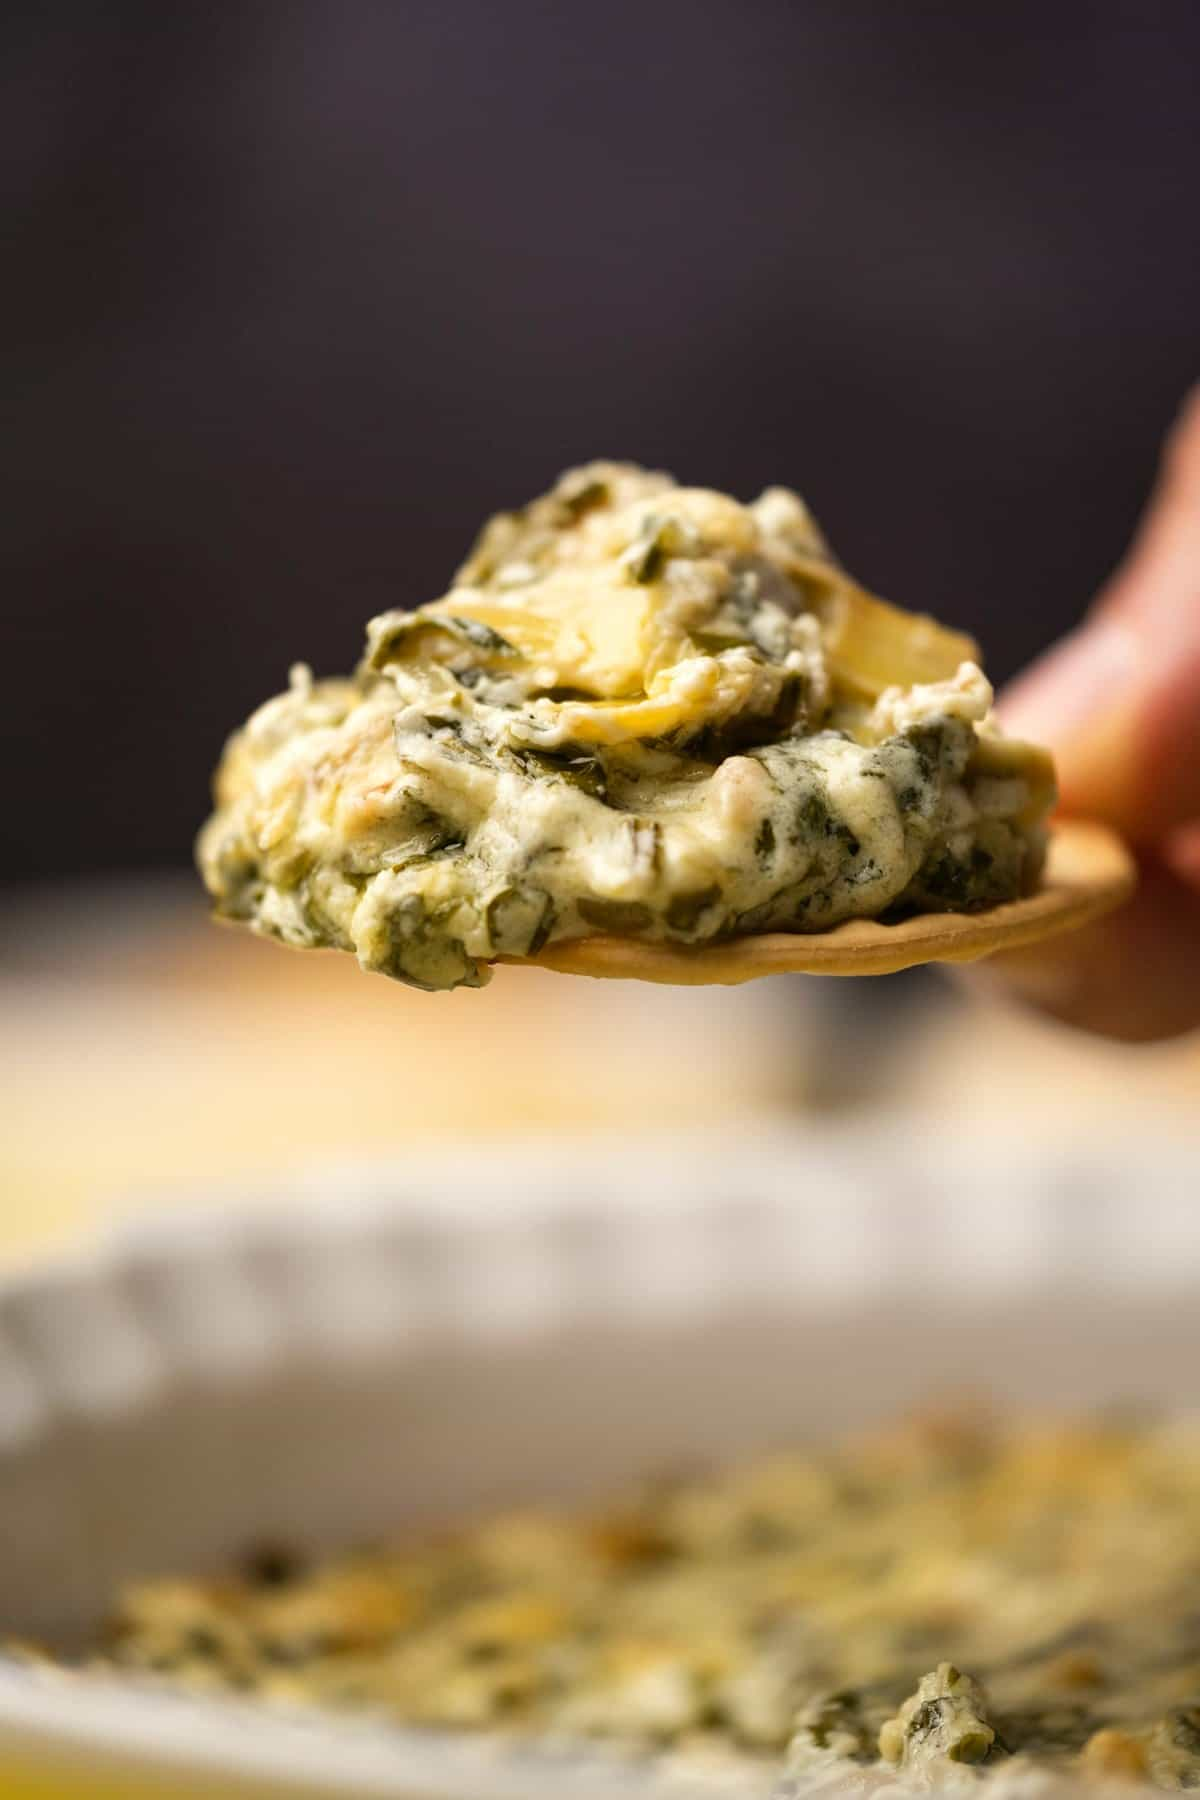 Spinach artichoke dip on a cracker.